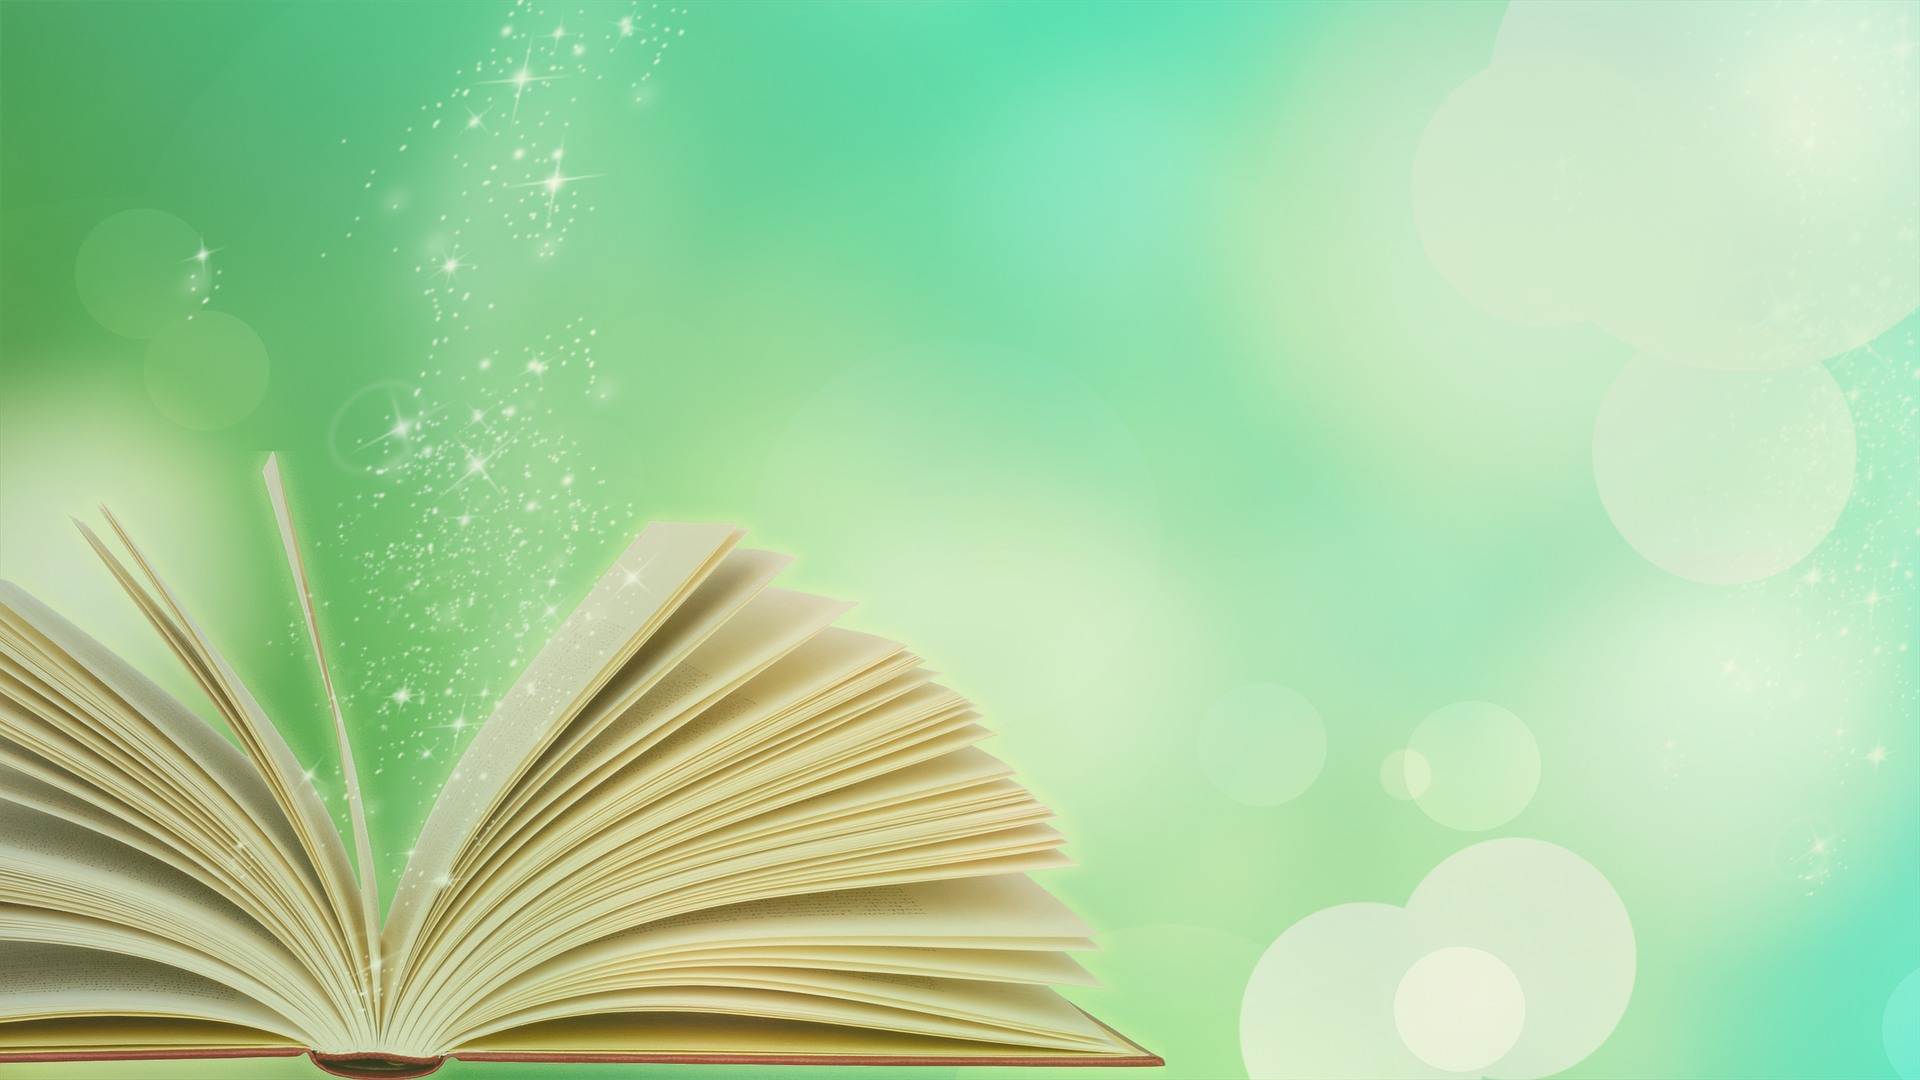 Join 9-year-oldEmmie Enchanted's world of reading! - Children can finally read book reviews written by someone their own age!